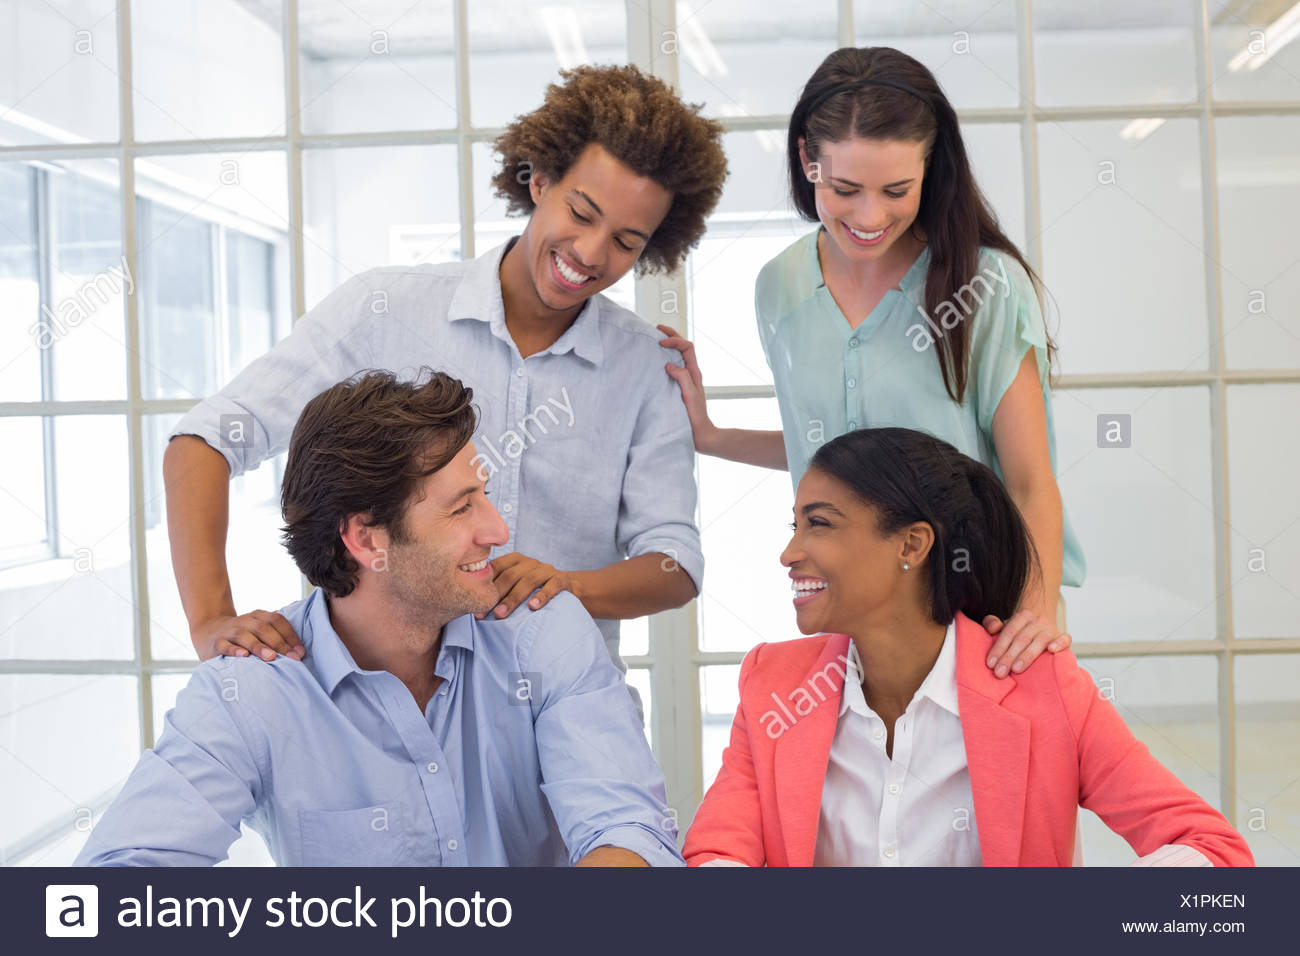 Coworkers congratulating and praising each other - Stock Image